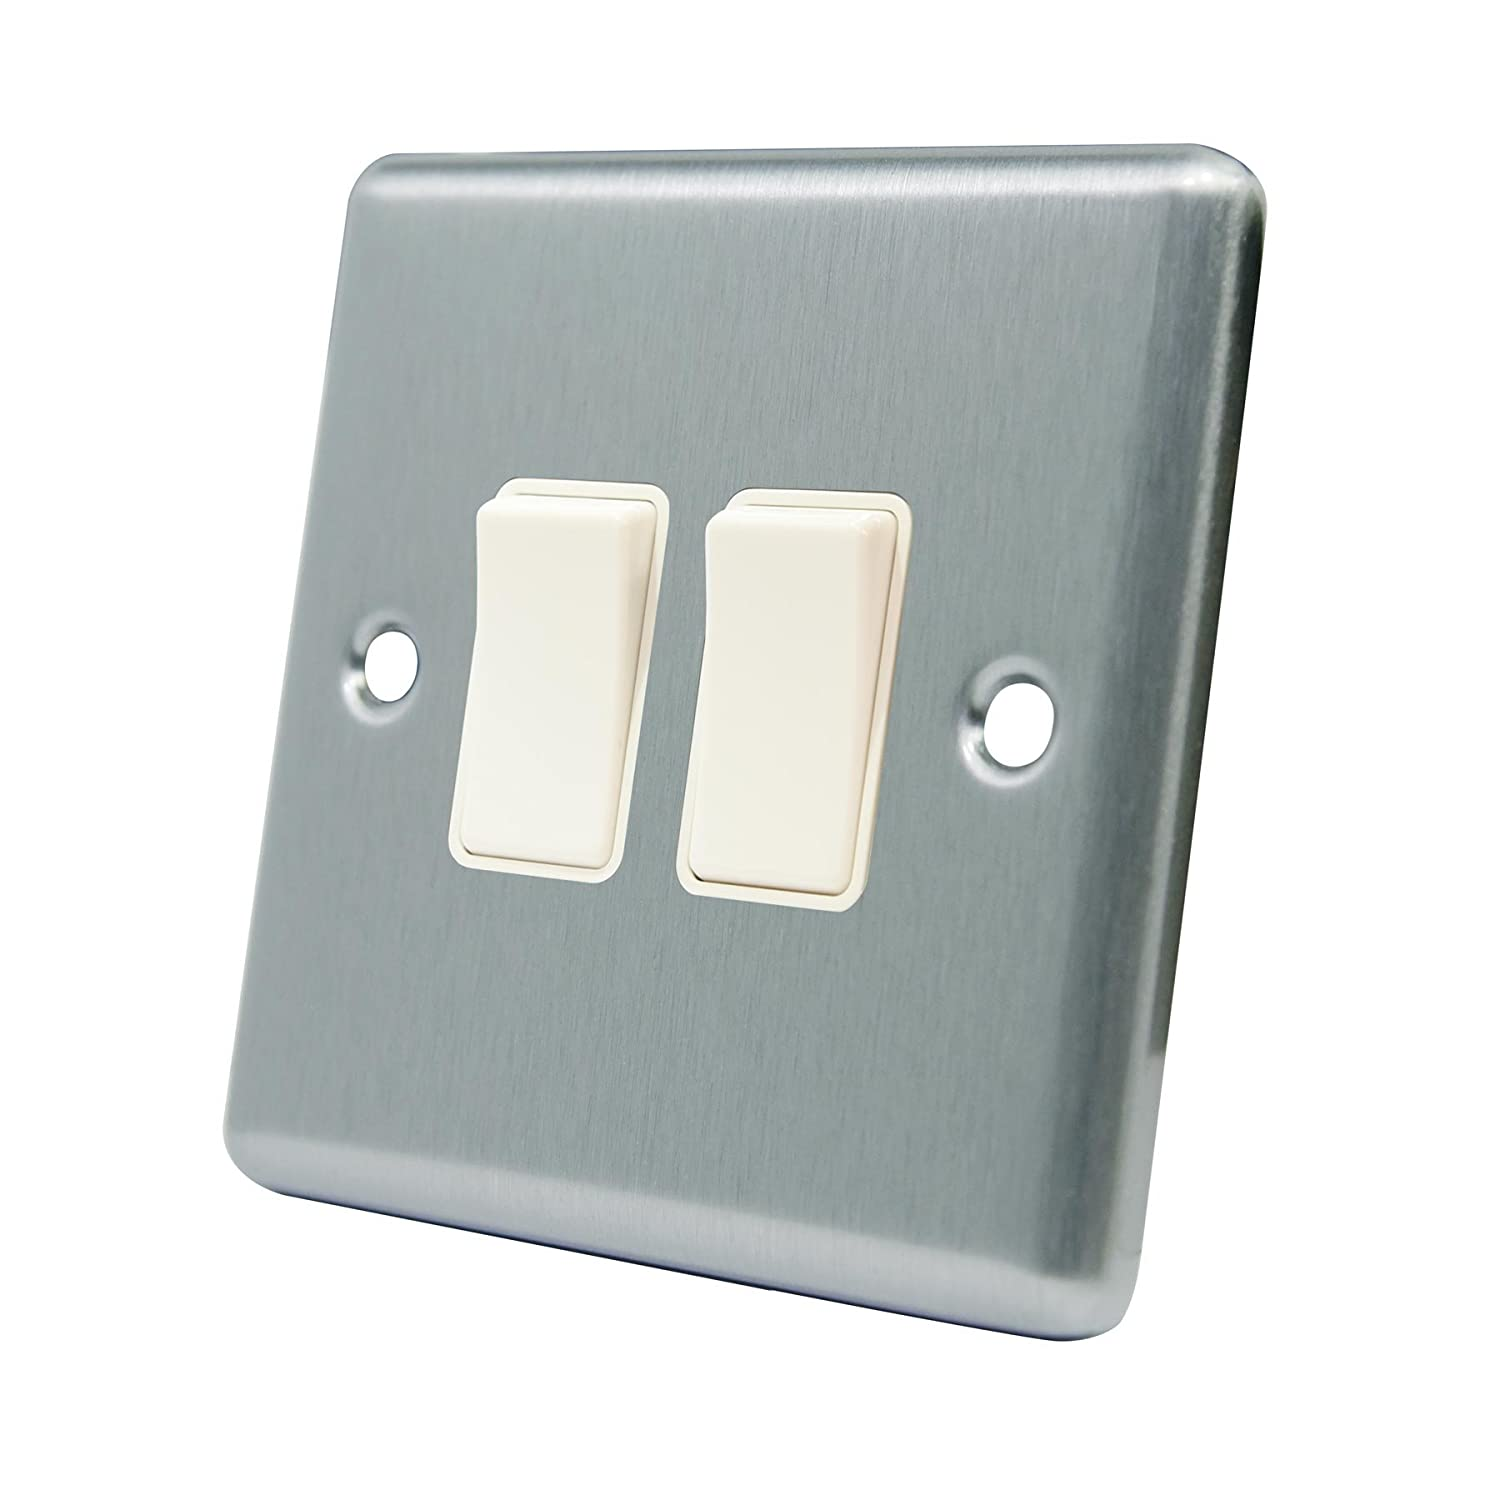 Light Switch 2 Gang - Satin Matt Chrome - Square - White Insert Plastic Switch - 10 Amp Double 2 Gang 2 Way A5 Products A5 Switch SS